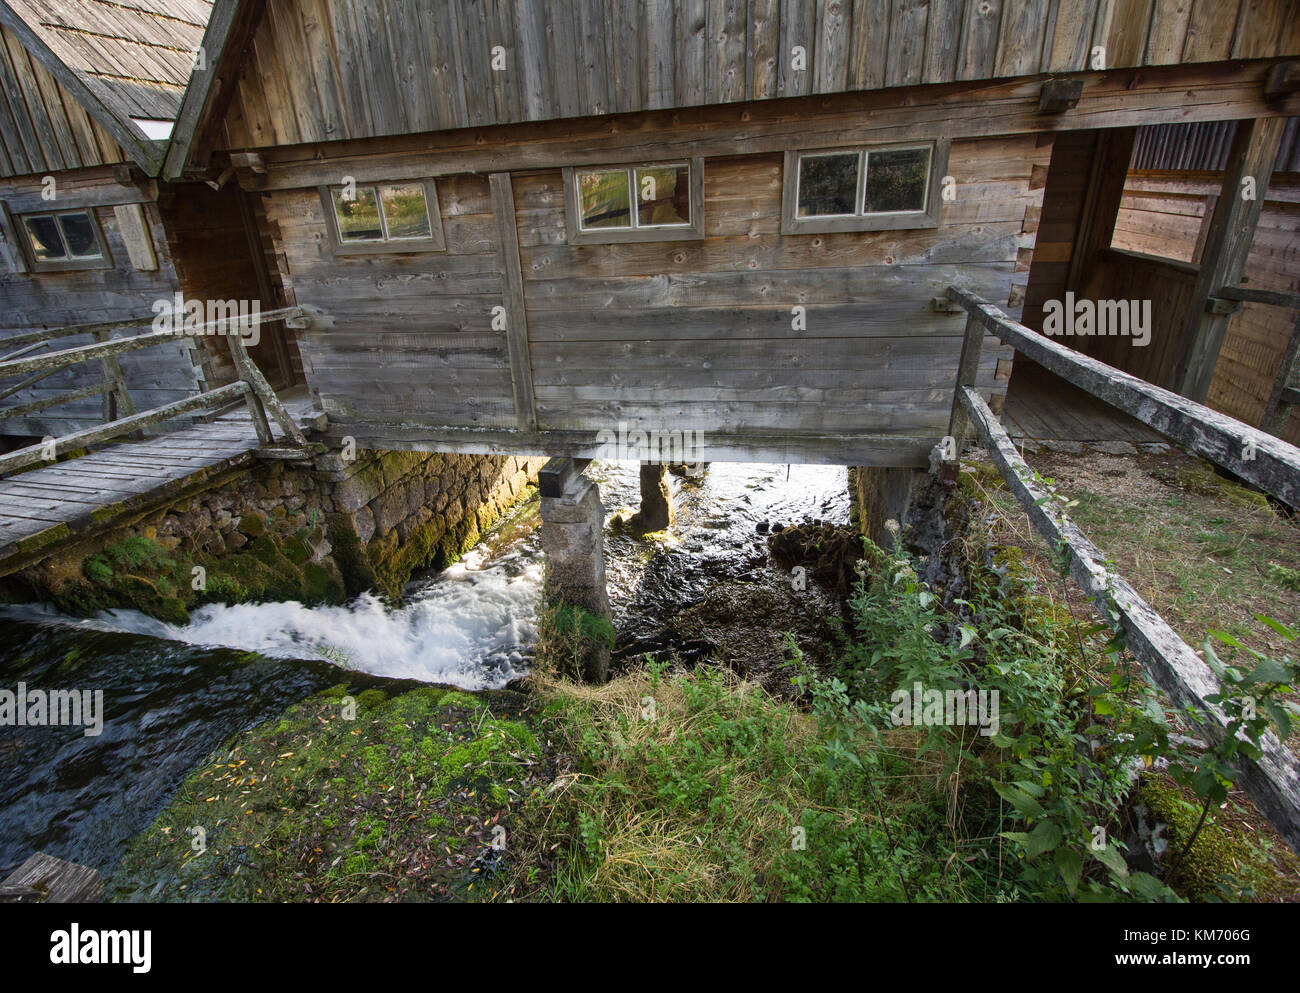 the old water mills at majerovo vrilo which is one of the spings